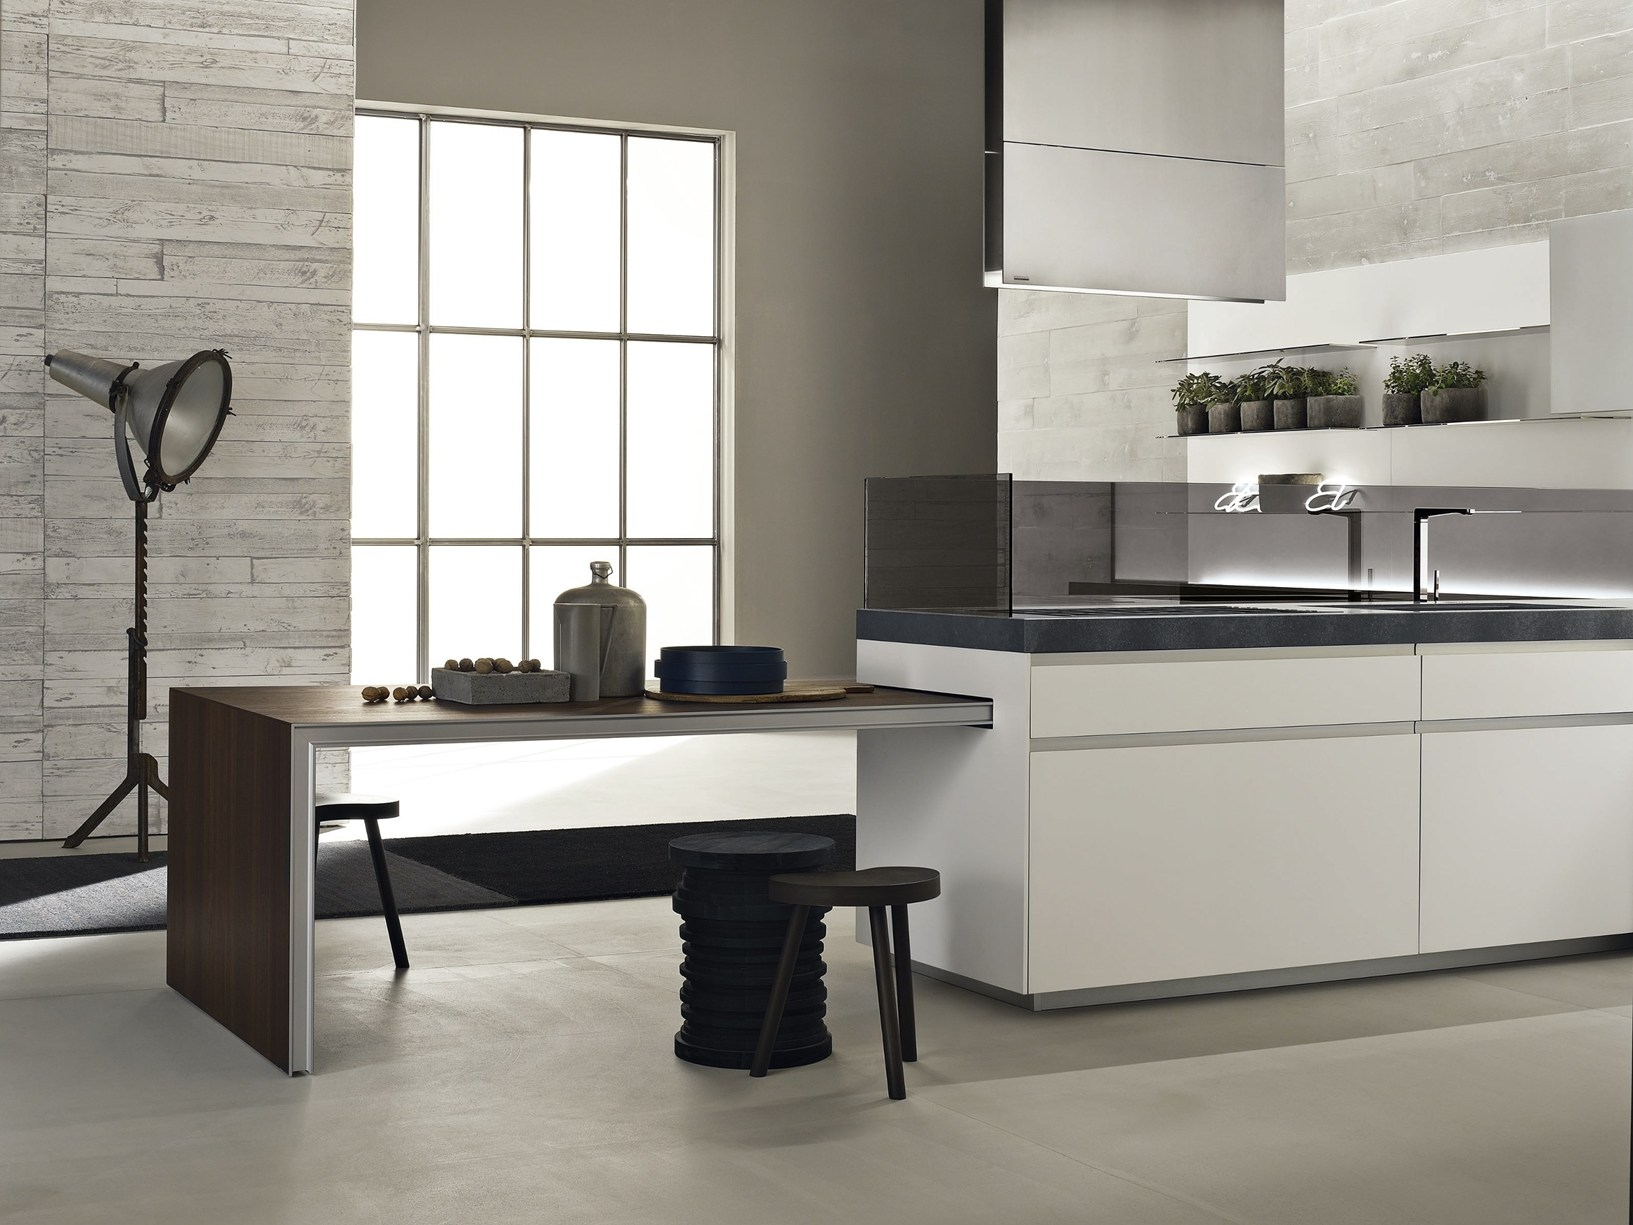 Stunning Isole Per Cucina Ikea Contemporary - Skilifts.us ...